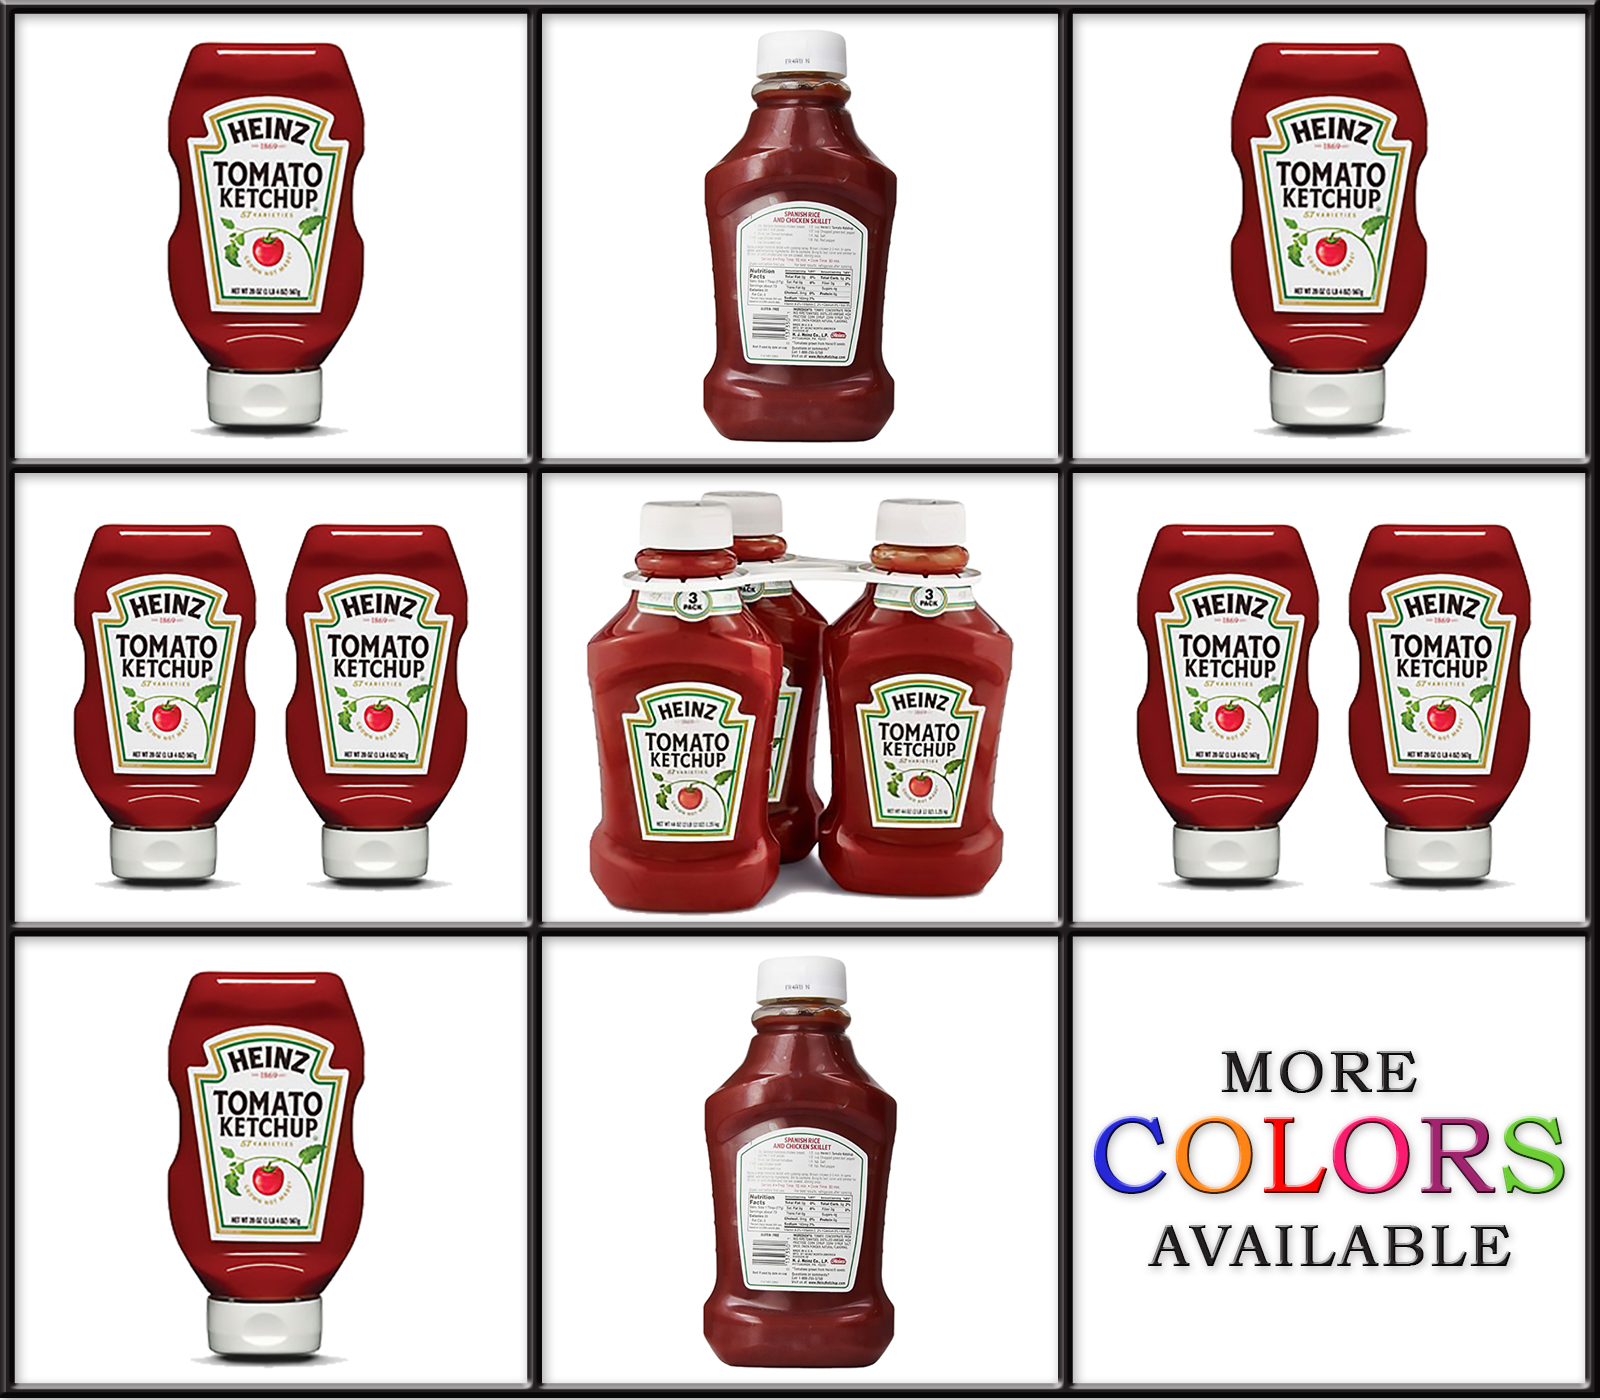 Heinz Tomato Ketchup 44 oz. bottle. Multiple Packs